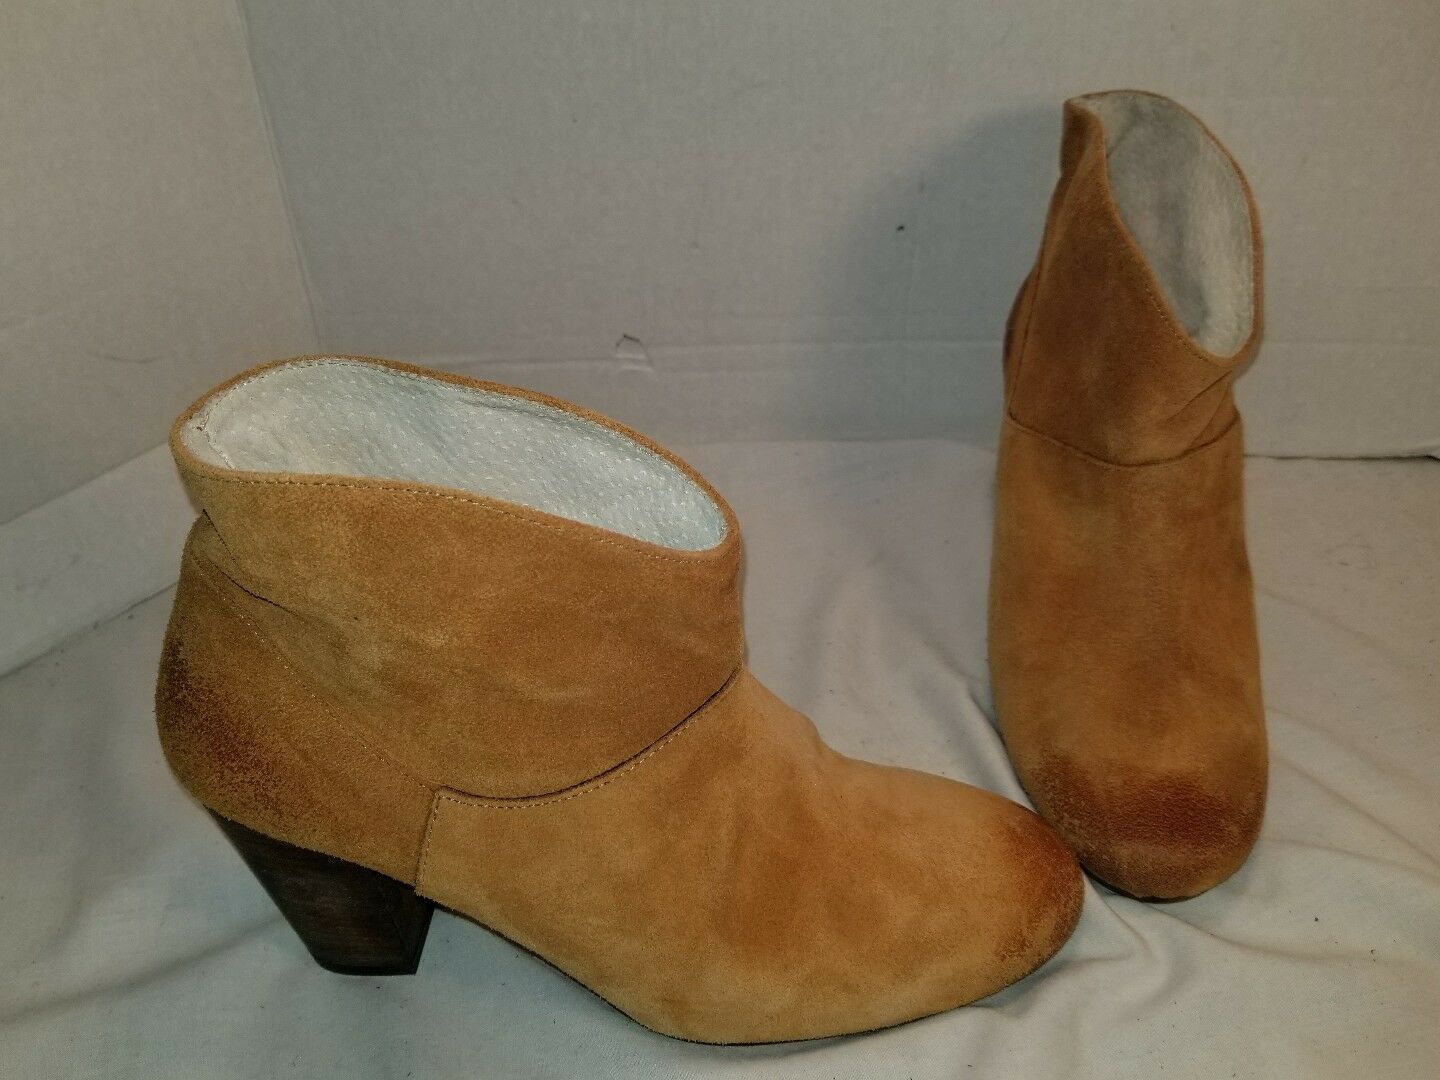 NEW JEFFREY CAMPBELL X PEOPLE FREE PEOPLE X WESTMONT BROWN HEEL Stiefel Damenschuhe US 8 EUR 38 e9665e